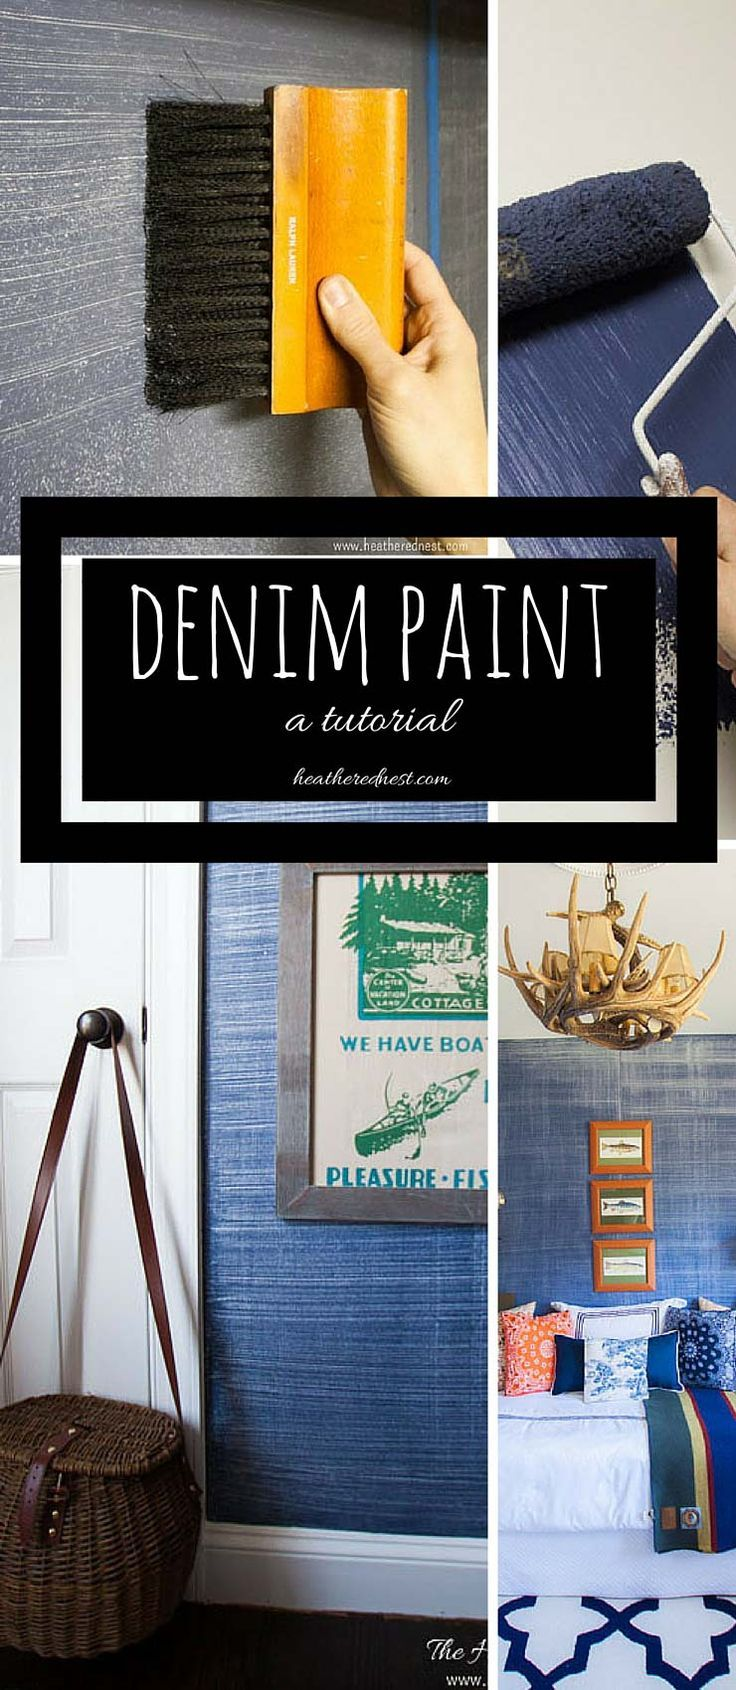 Denim paint faux finish the look of wallpaper for 1 10 - Paint finish for bedroom ...